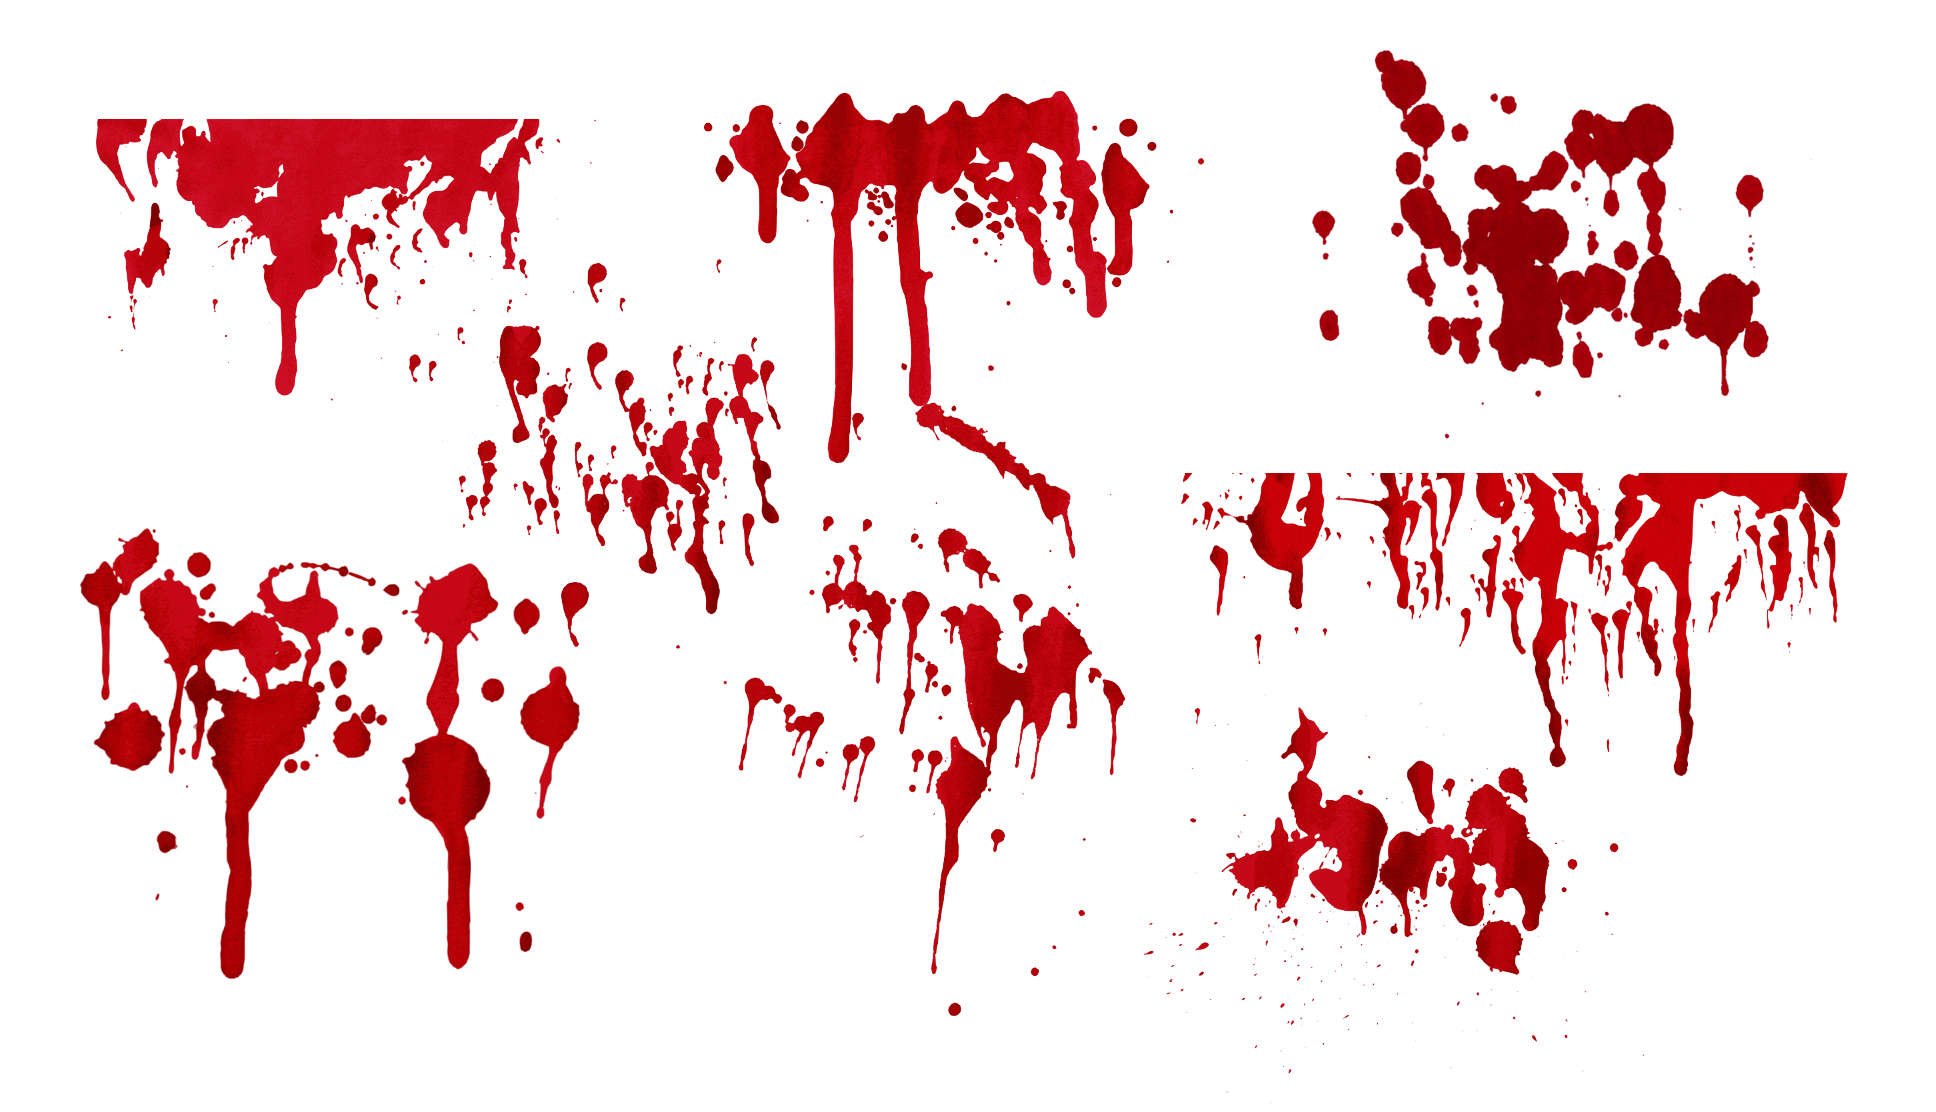 8 Blood Splatter Drip Png Transparent Onlygfx Com Improved blood texture detail and increased resolution from 512 to 2048. 8 blood splatter drip png transparent